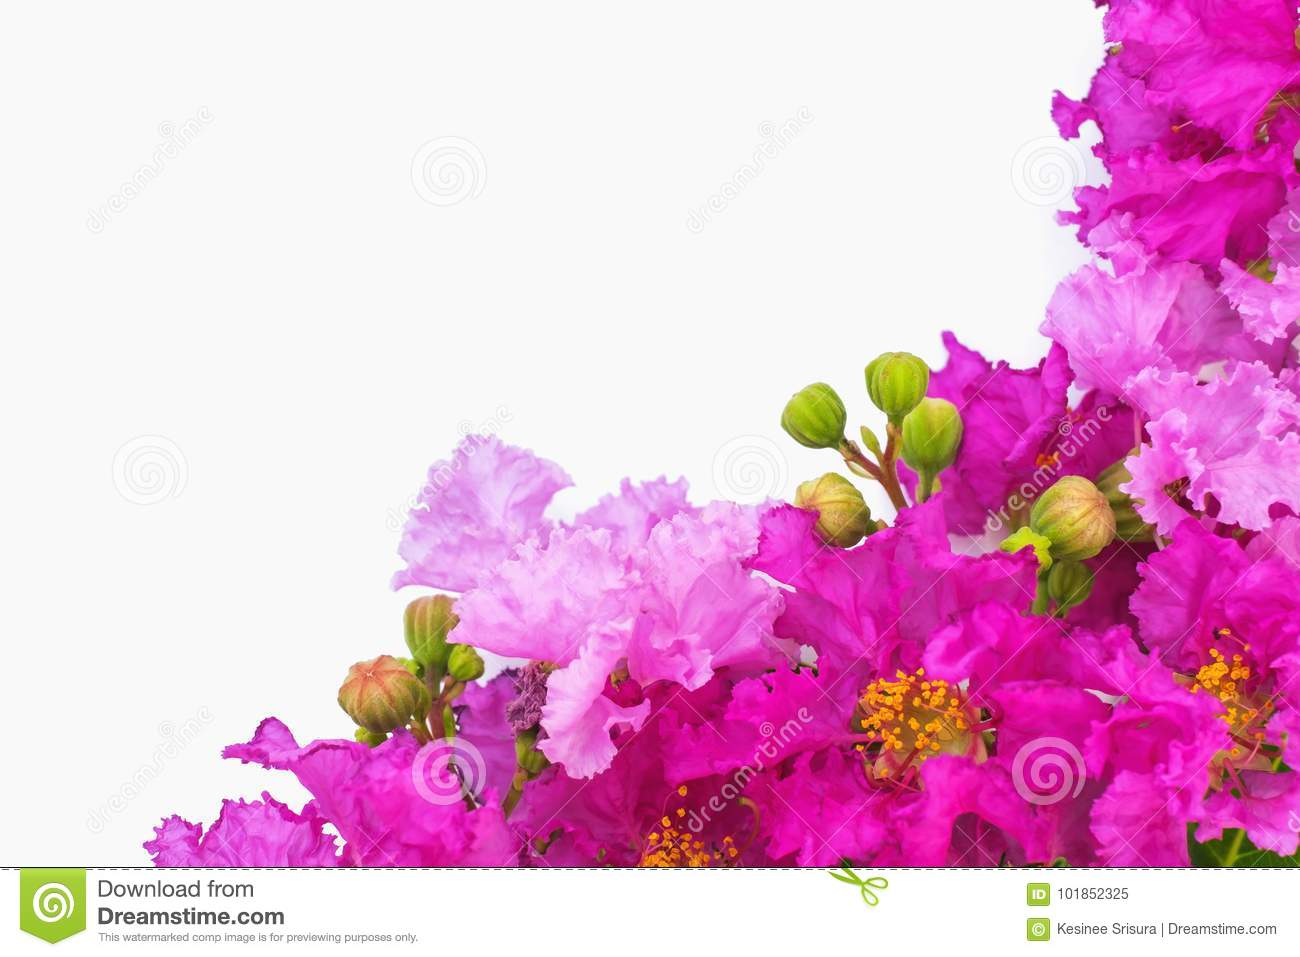 Beautiful purple flowers on white background stock image image of download beautiful purple flowers on white background stock image image of bloom border izmirmasajfo